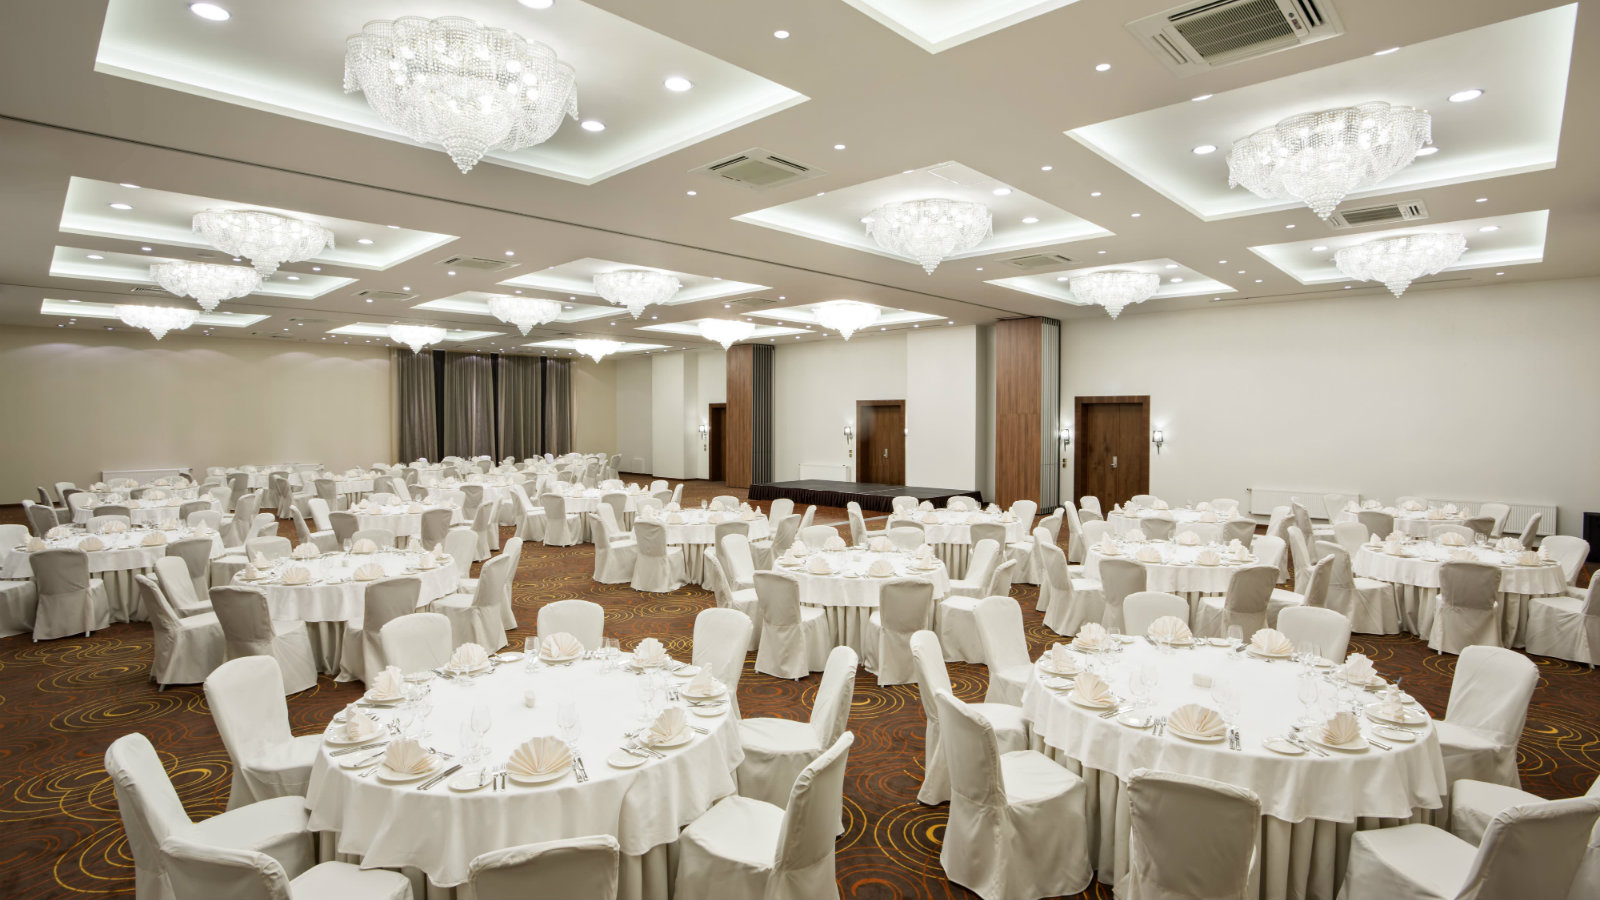 Grand Ballroom for banquets and festive celebrations at Sheraton Moscow Sheremetyevo